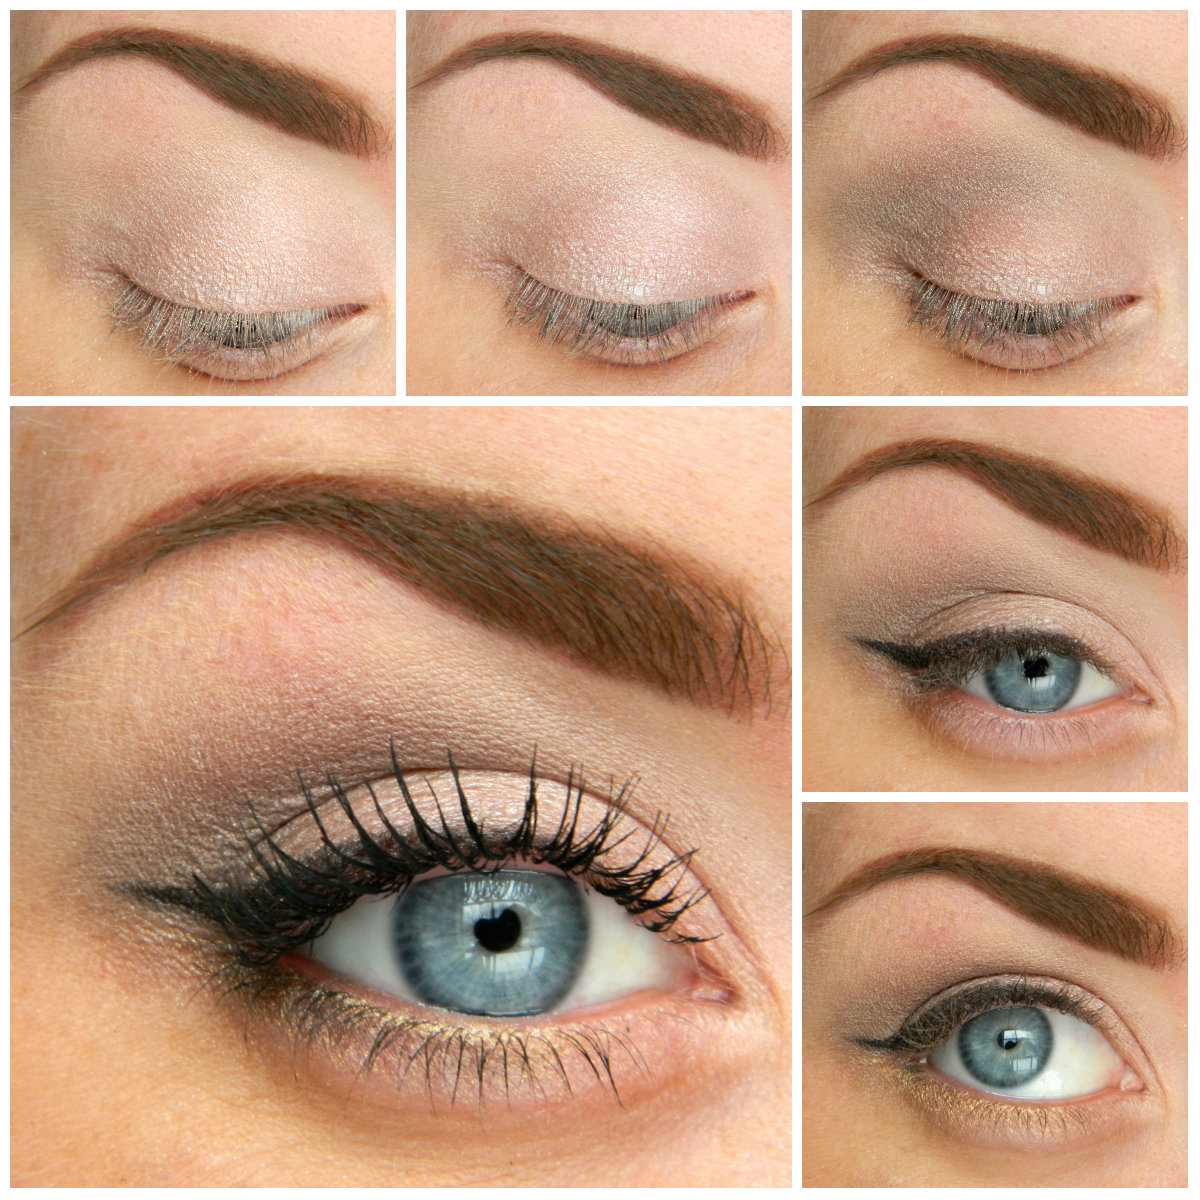 Pretty Light Eye Makeup 5 Ways To Make Blue Eyes Pop With Proper Eye Makeup Her Style Code